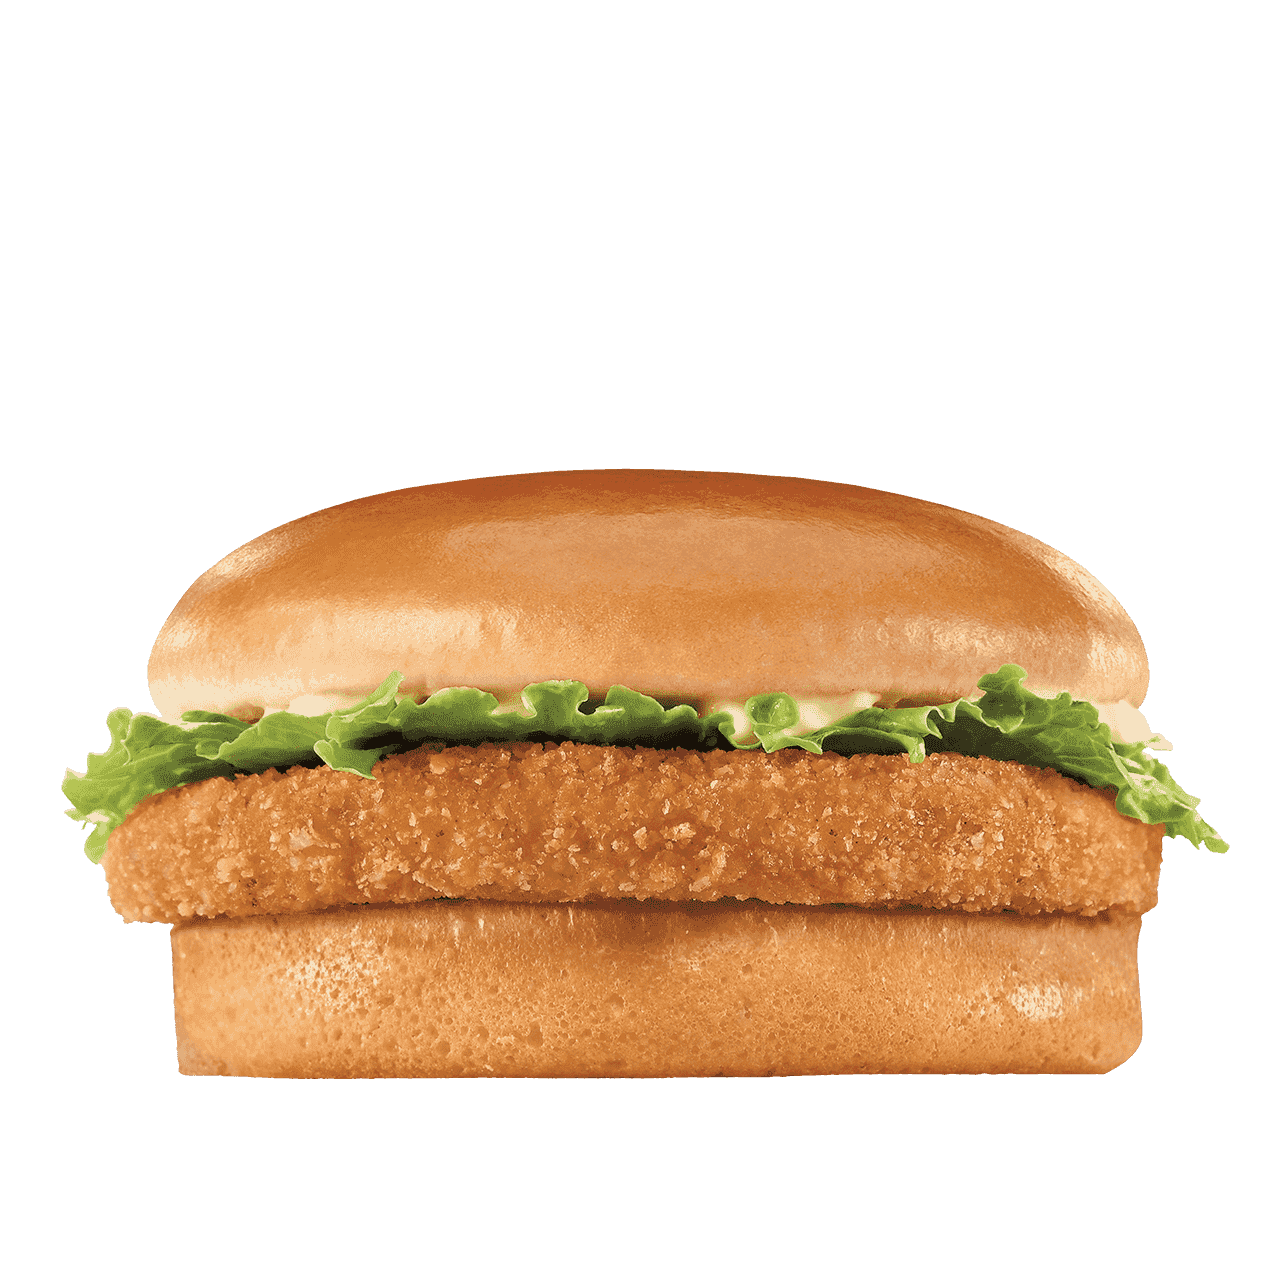 15 Cheap Fast Food Options | Chicken Sandwich | FastFoodMenuPrices.com